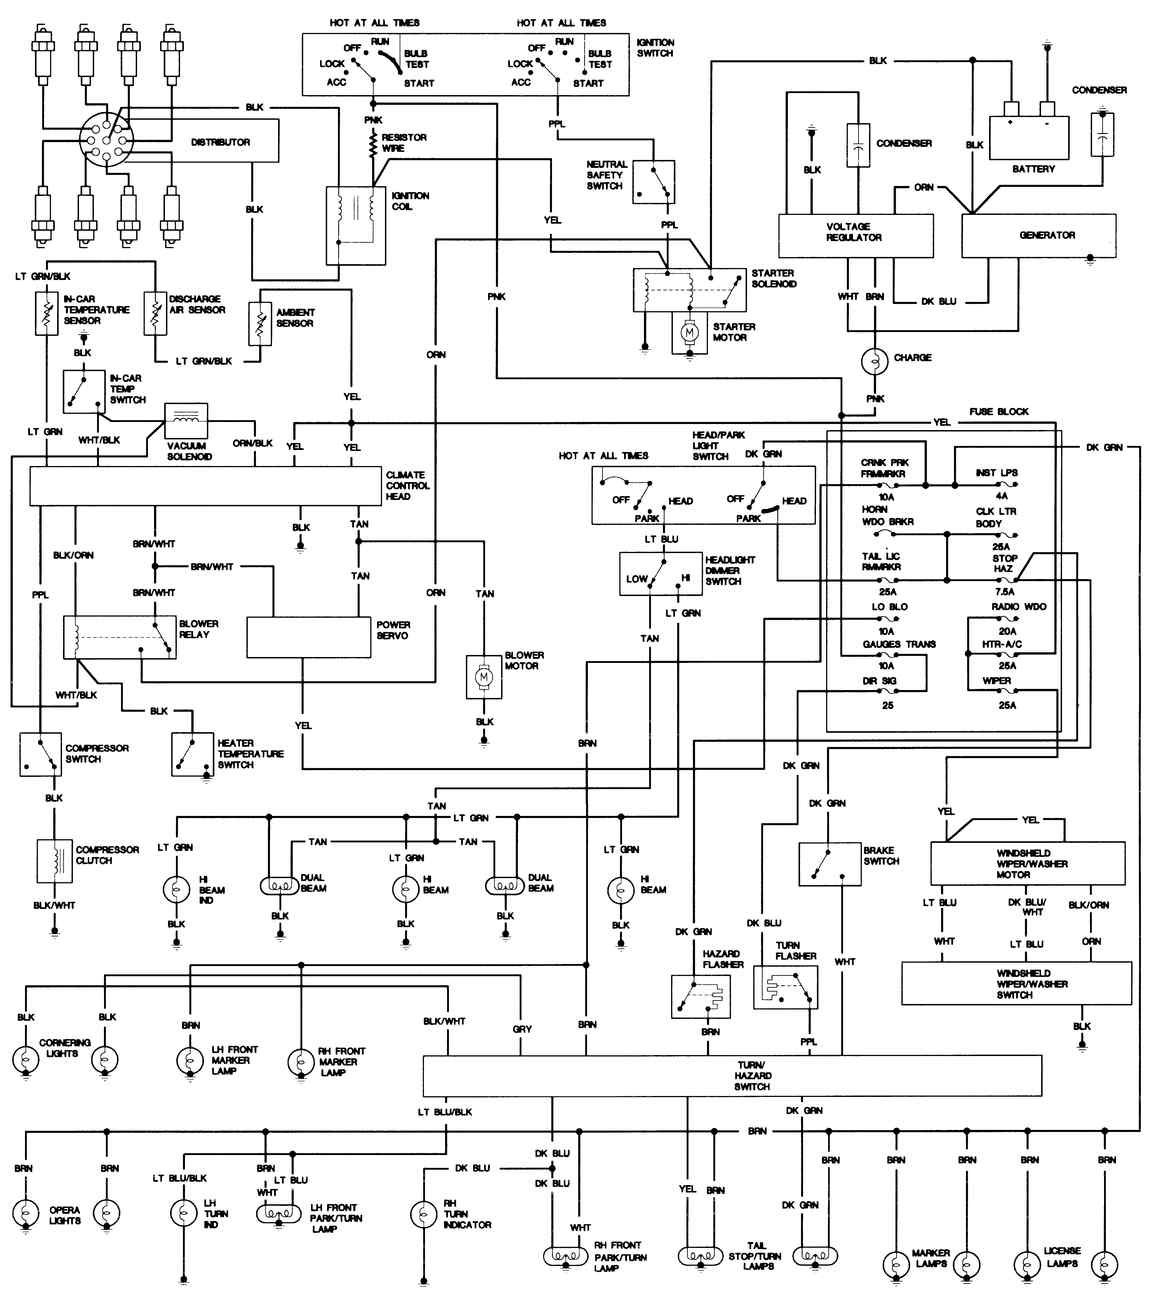 69 Cadillac Wiring Diagram Will Be A Thing 1940 I Am Installing An After Market Radio In My 1969 Coupe Rh Justanswer Com Schematics For 2000 Escalade 67 Deville